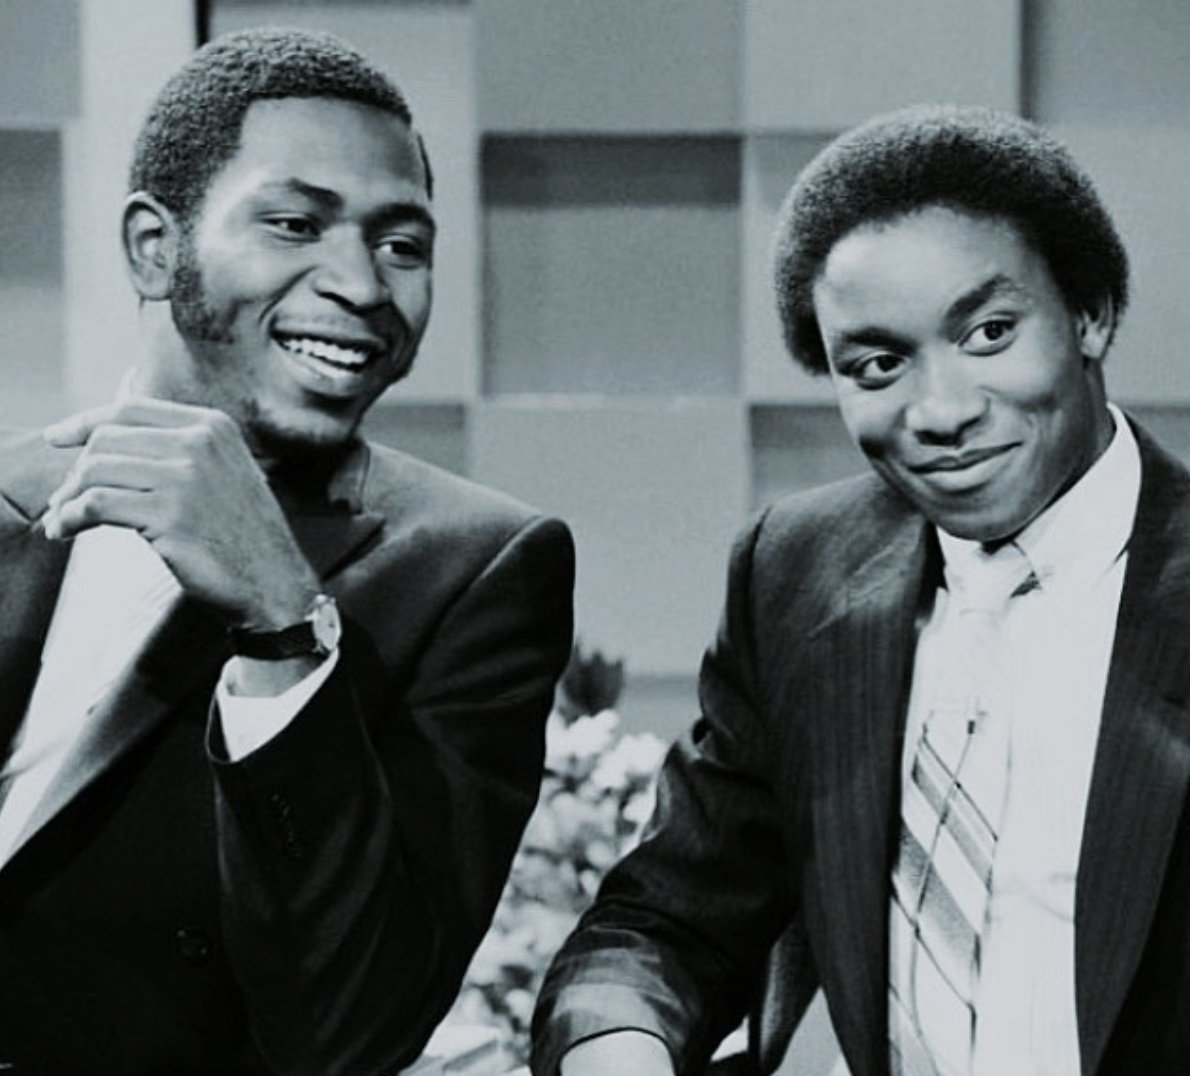 In honor of the #NBADraft, here's a throwback from the 1981 Draft when Mark Aguirre & @isiahthomas went 1 & 2! Cheers to the Rookies! #Cheurlin1788 #DraftDay